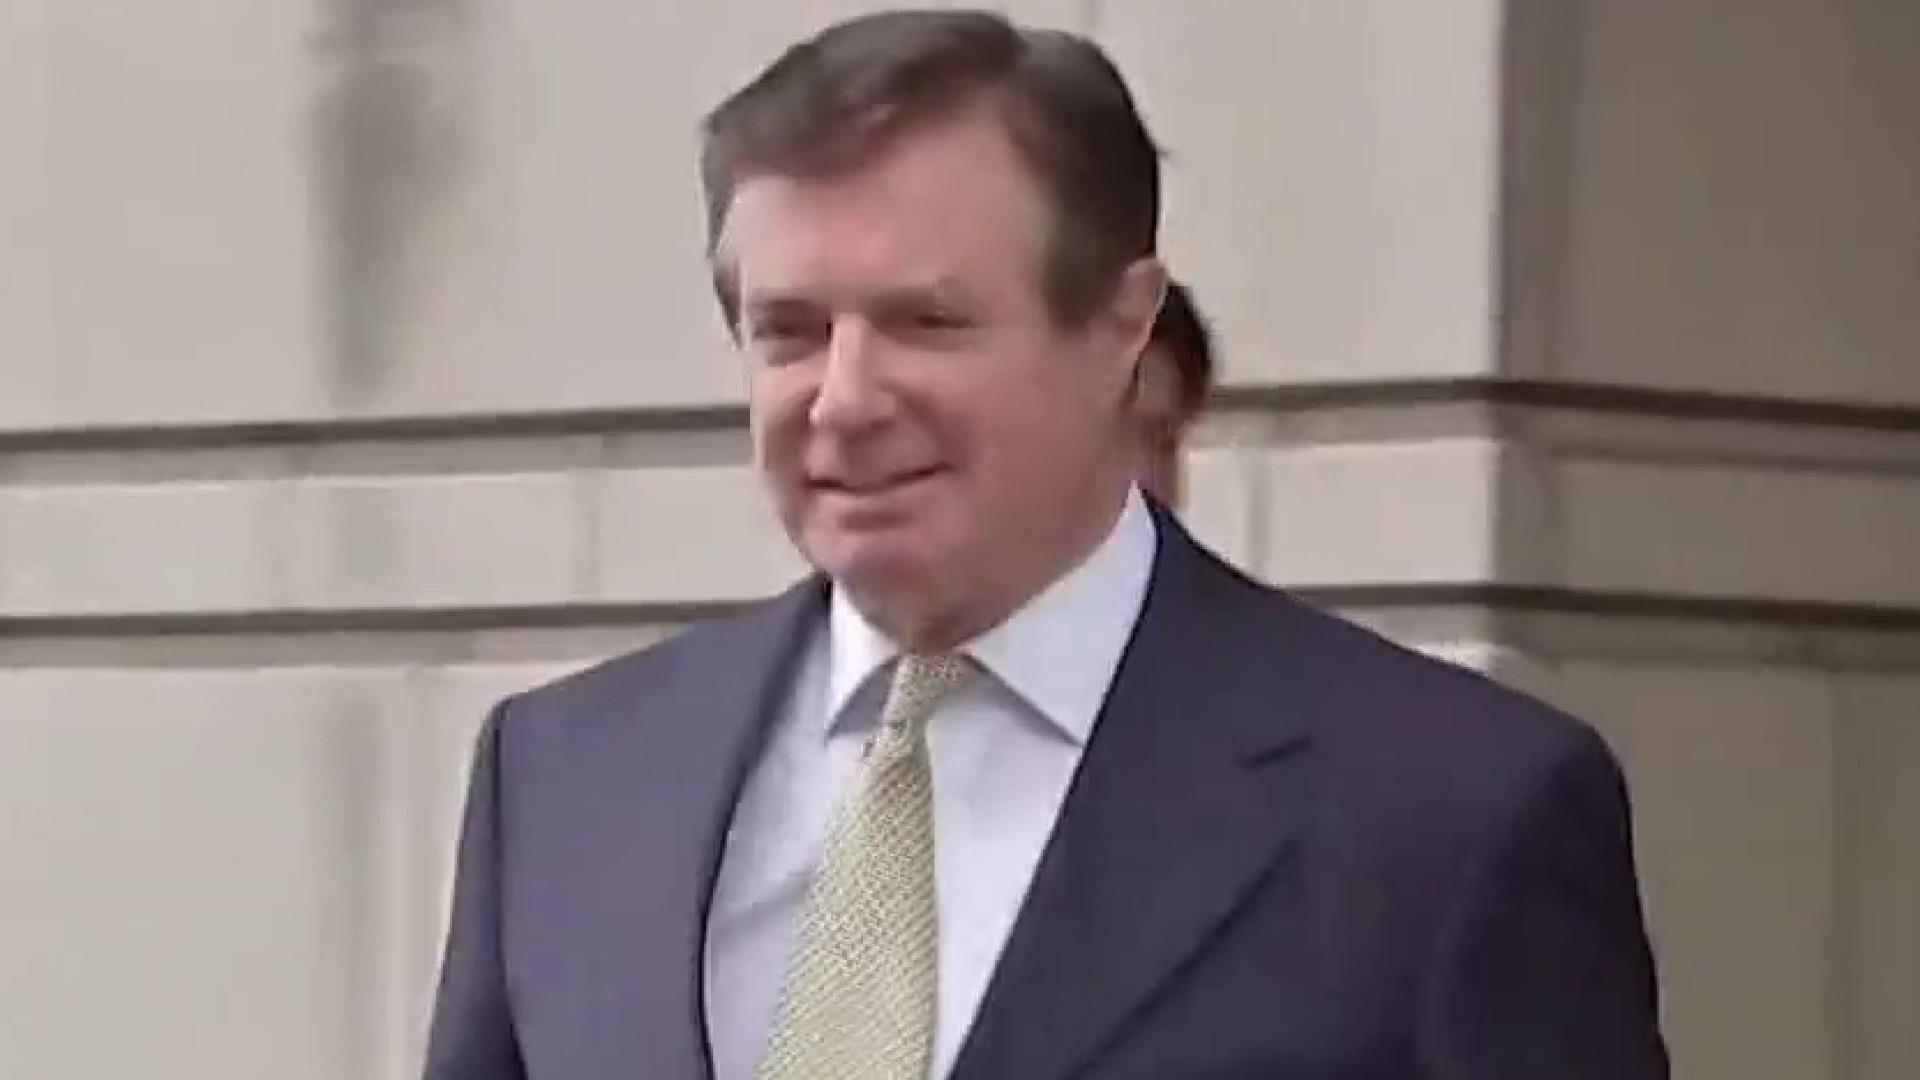 Legal minds analyze Manafort's 7.5 years for federal crimes